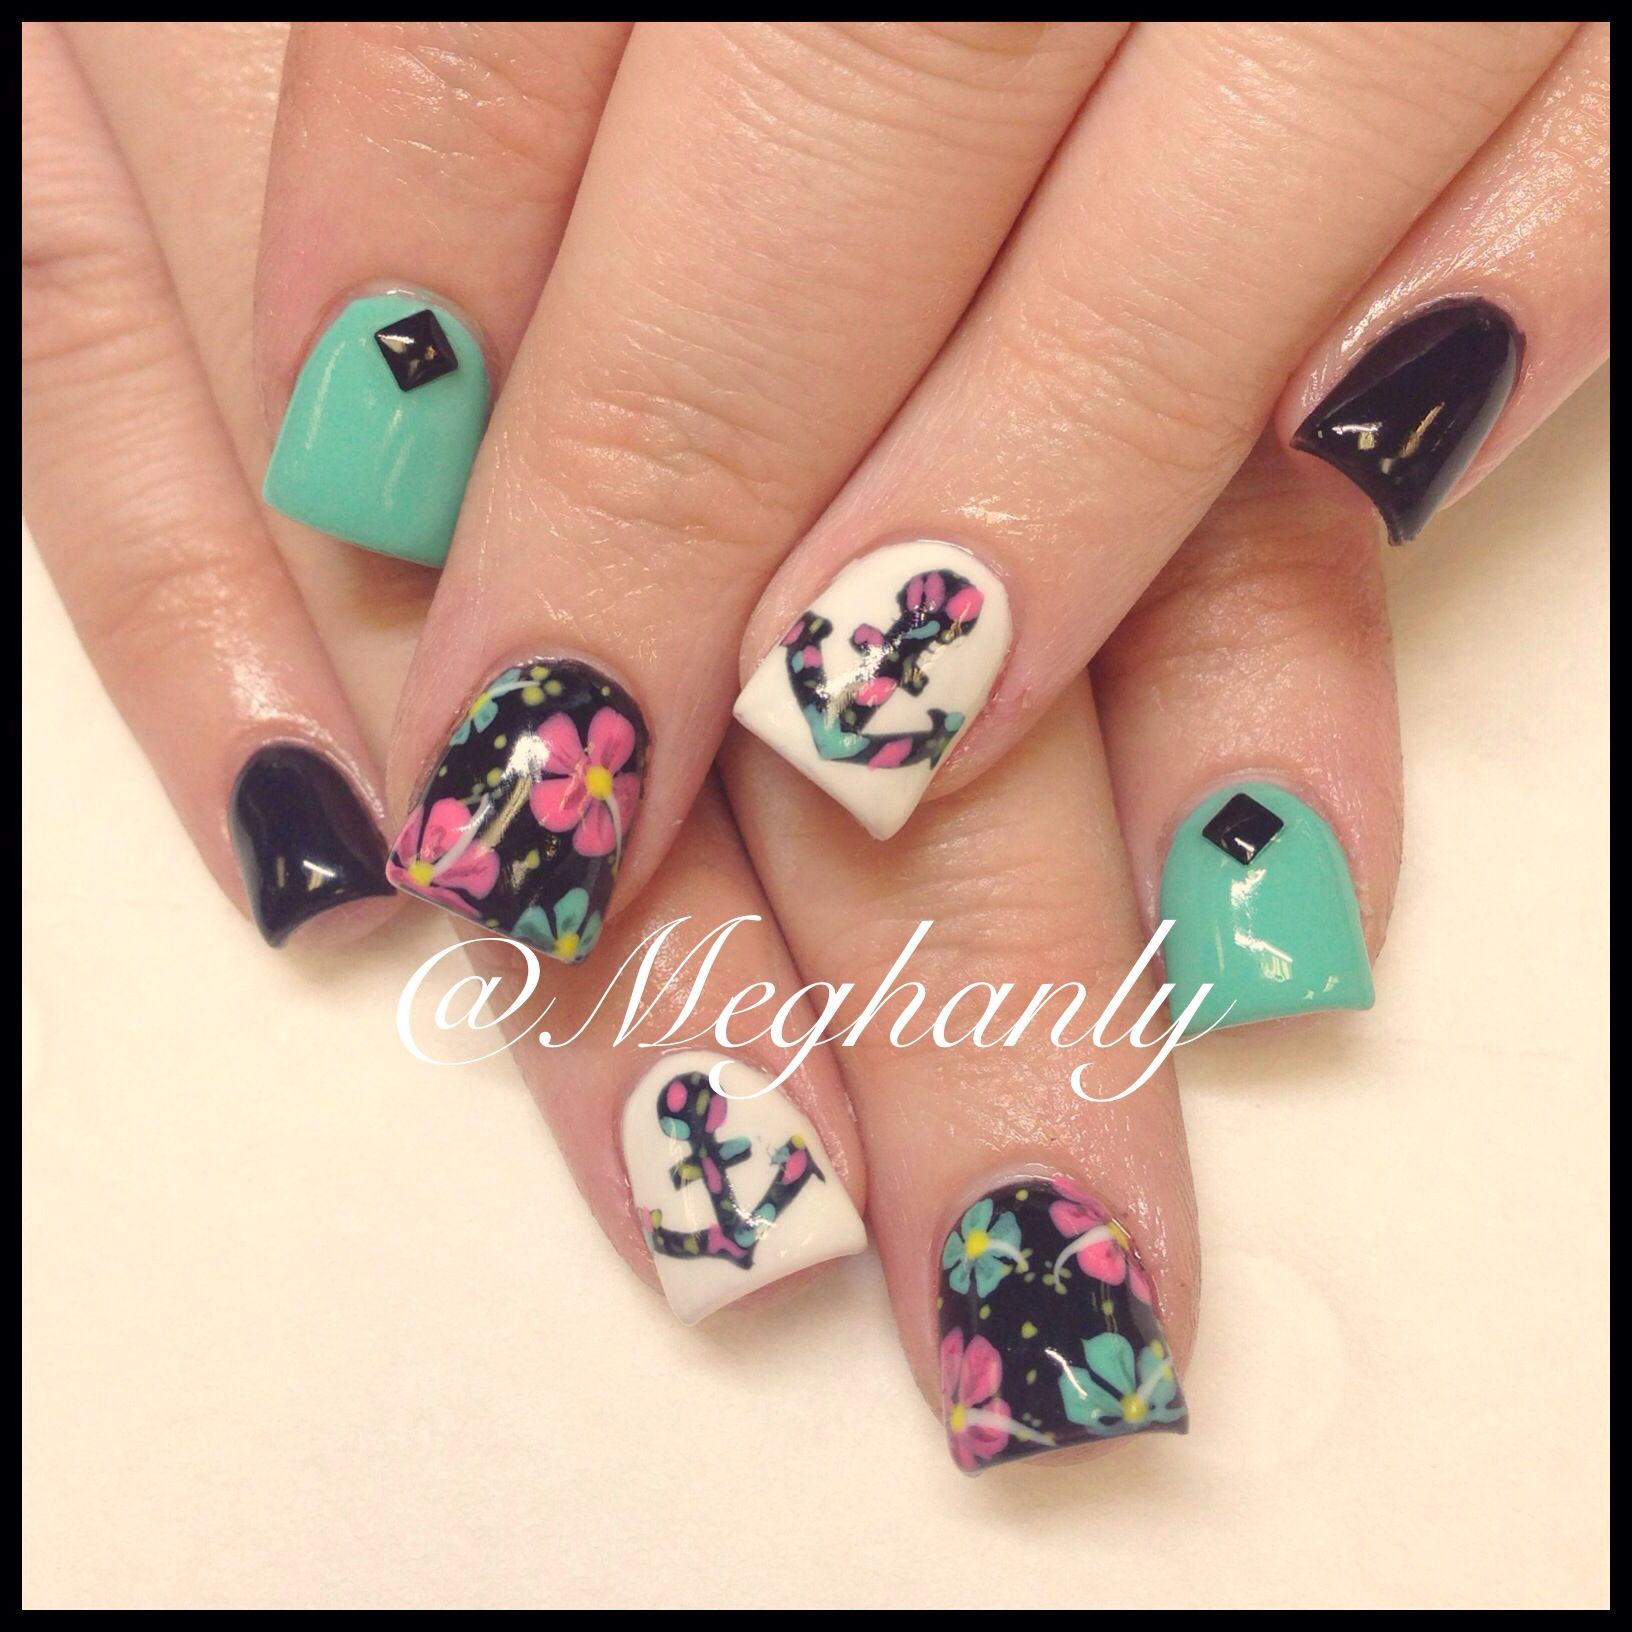 Anchor nails nail art summer nails flower print nails anchor nails nail art summer nails flower print prinsesfo Image collections